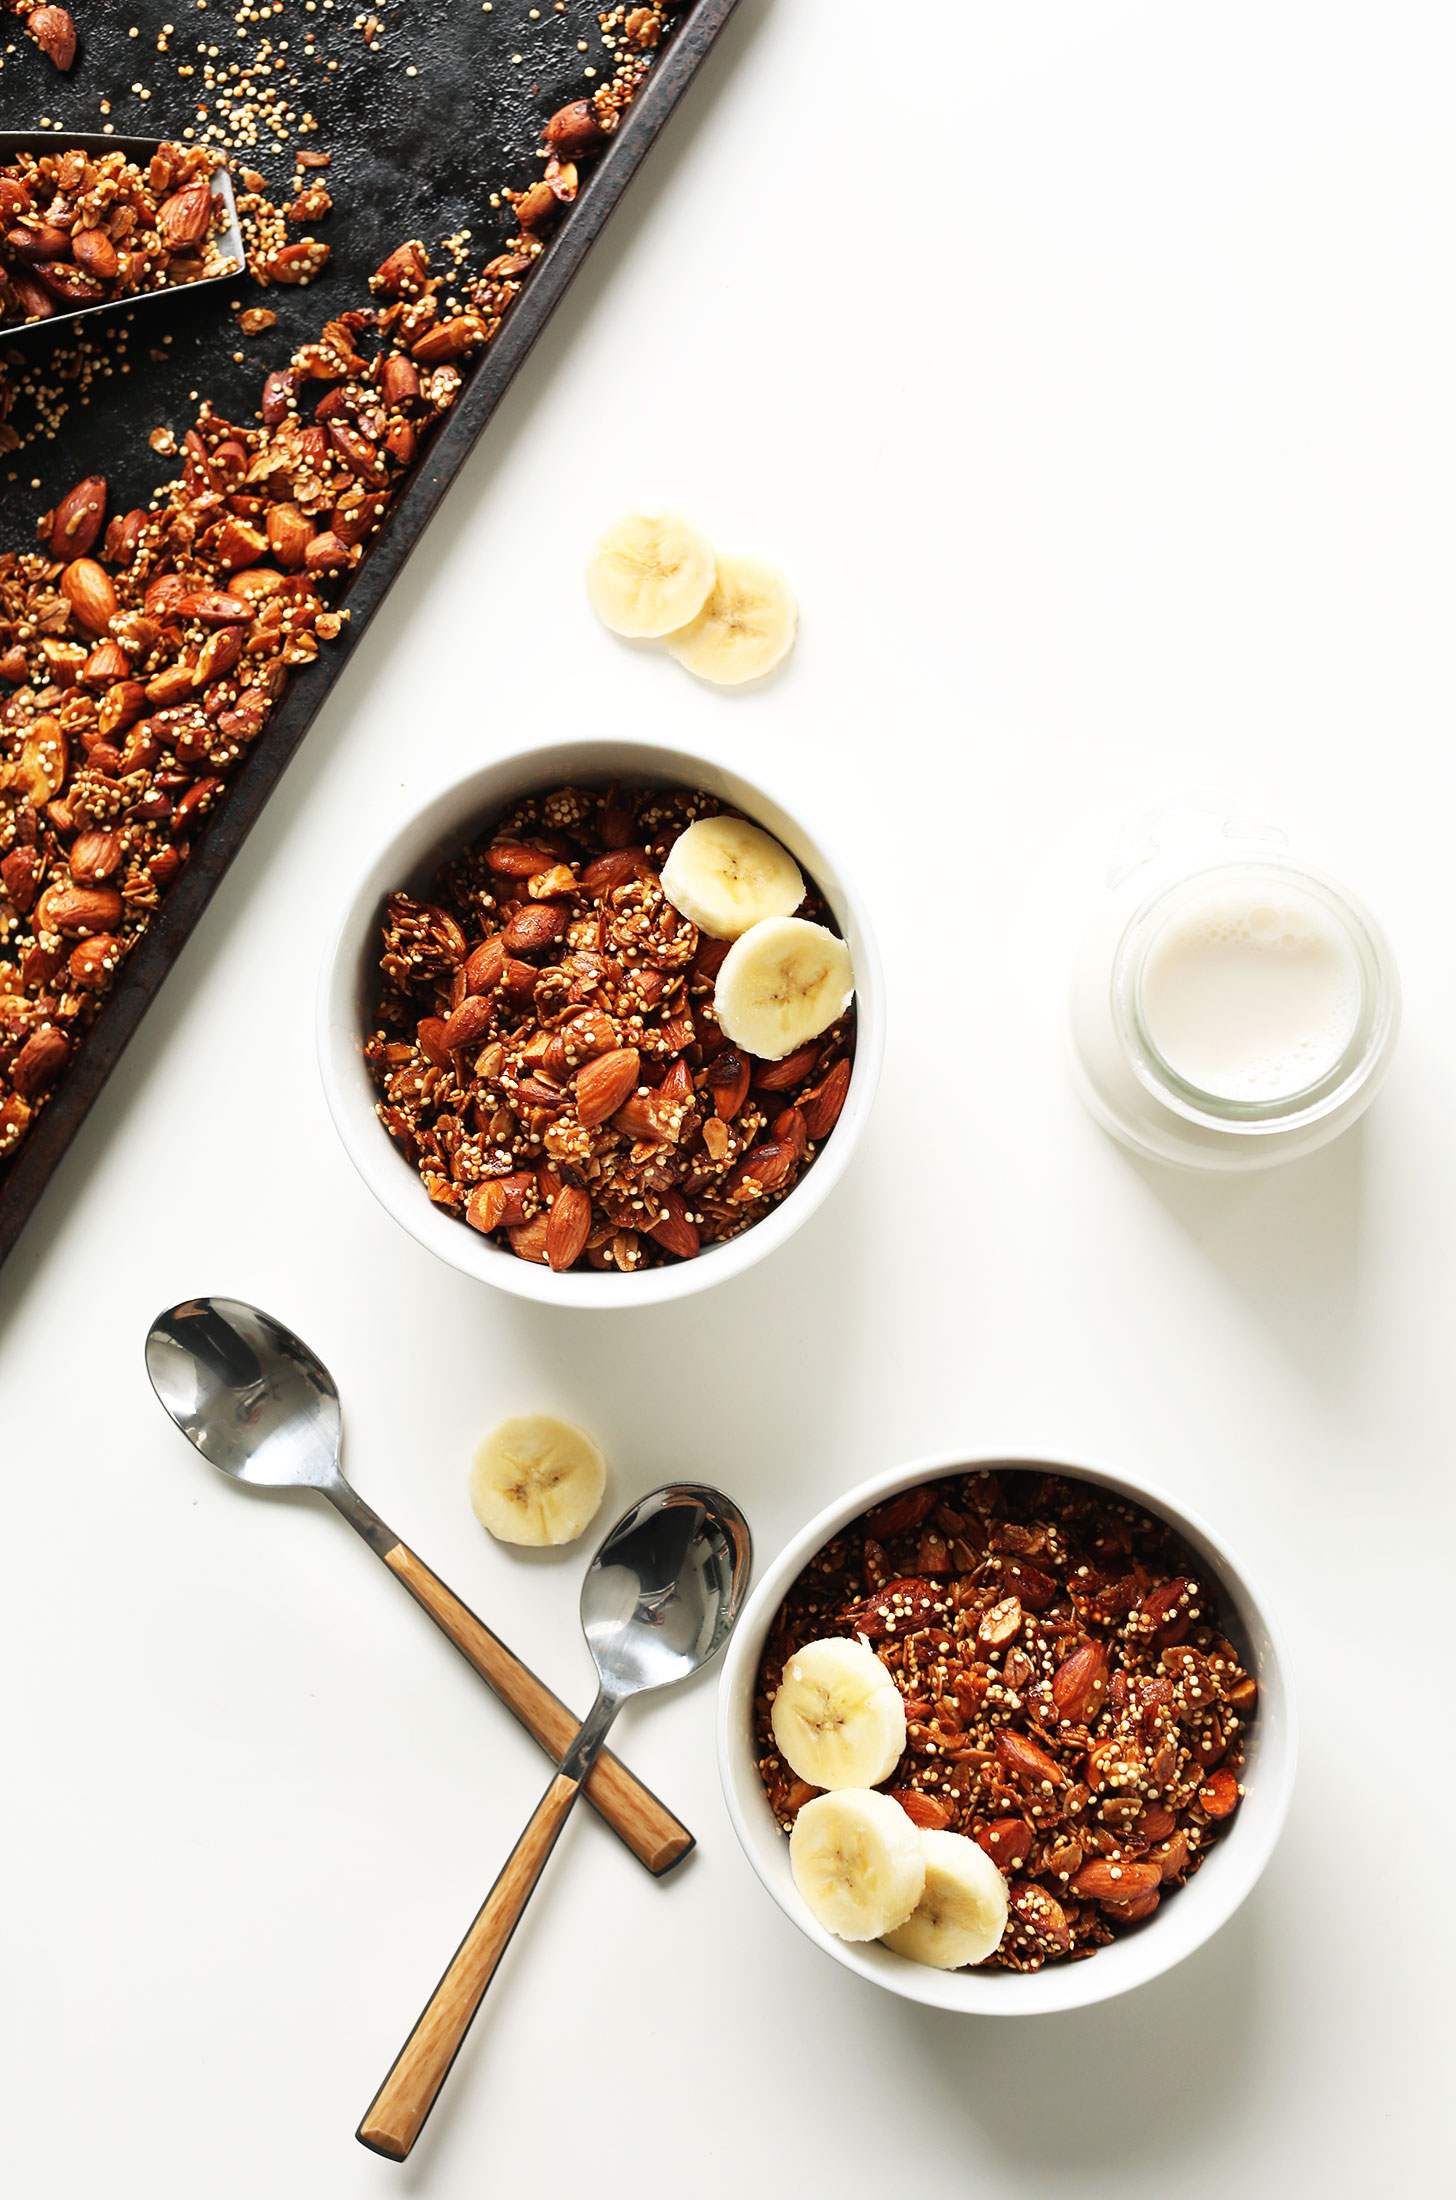 Bowls of our healthy gluten-free Quinoa Granola with Oats & Almonds